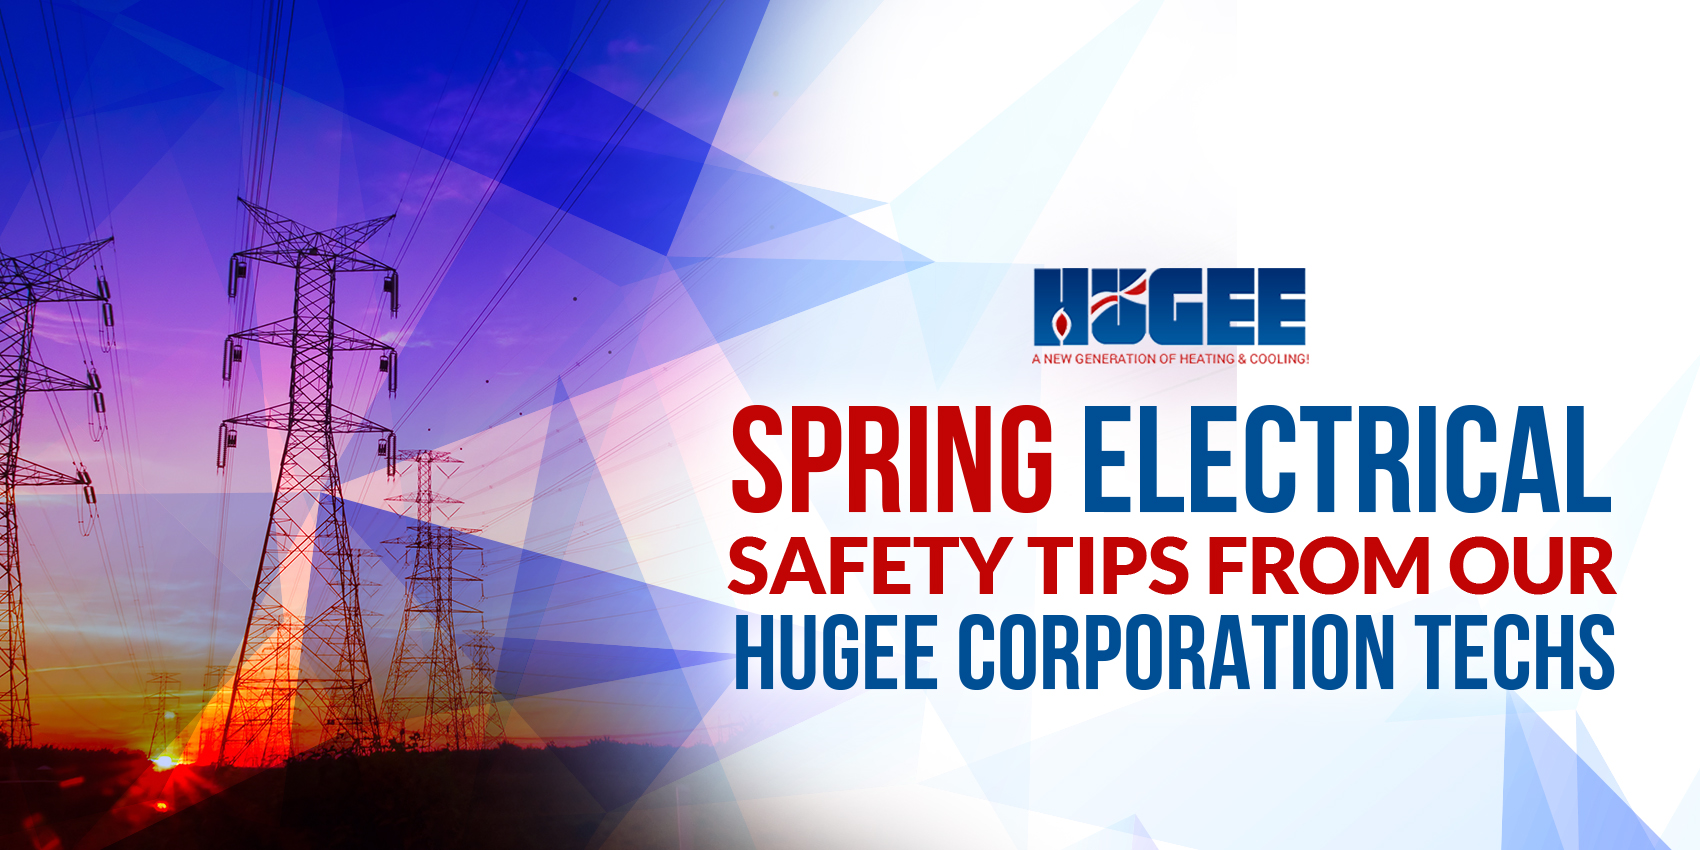 Spring Electrical Safety Tips From Our Hugee Corporation Techs